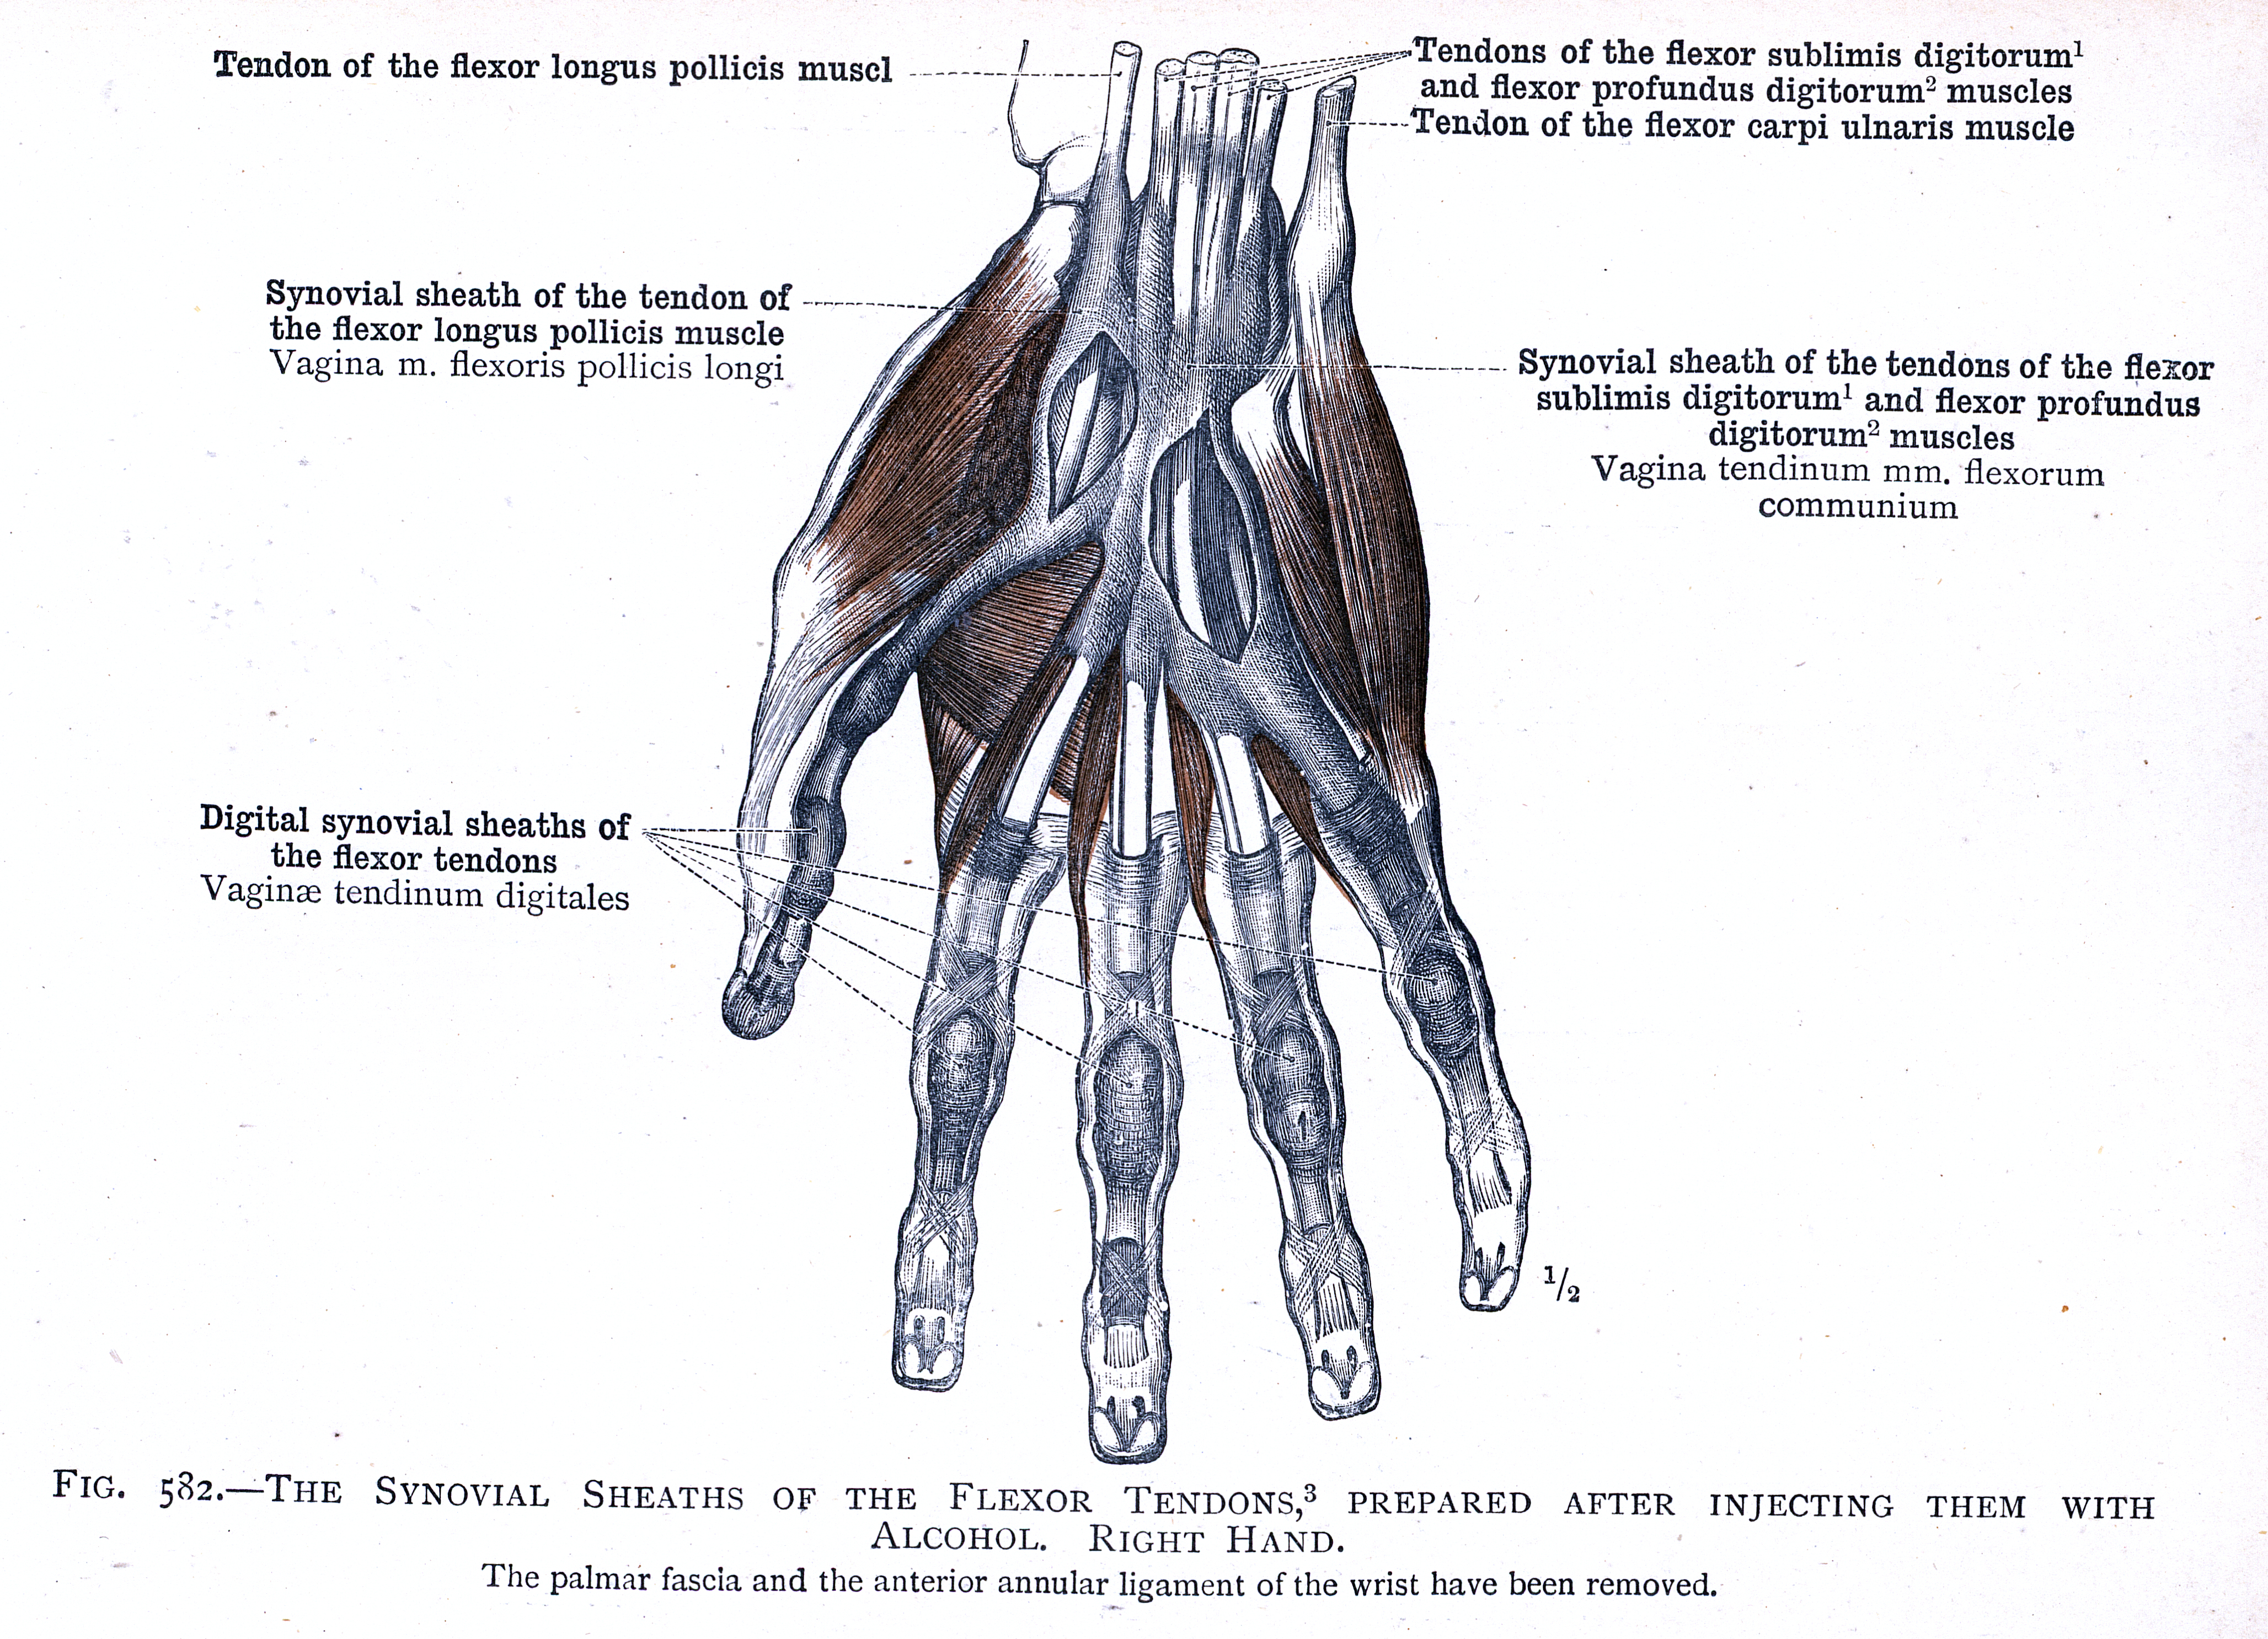 582. The synovial sheaths of the flexor tendons, right hand